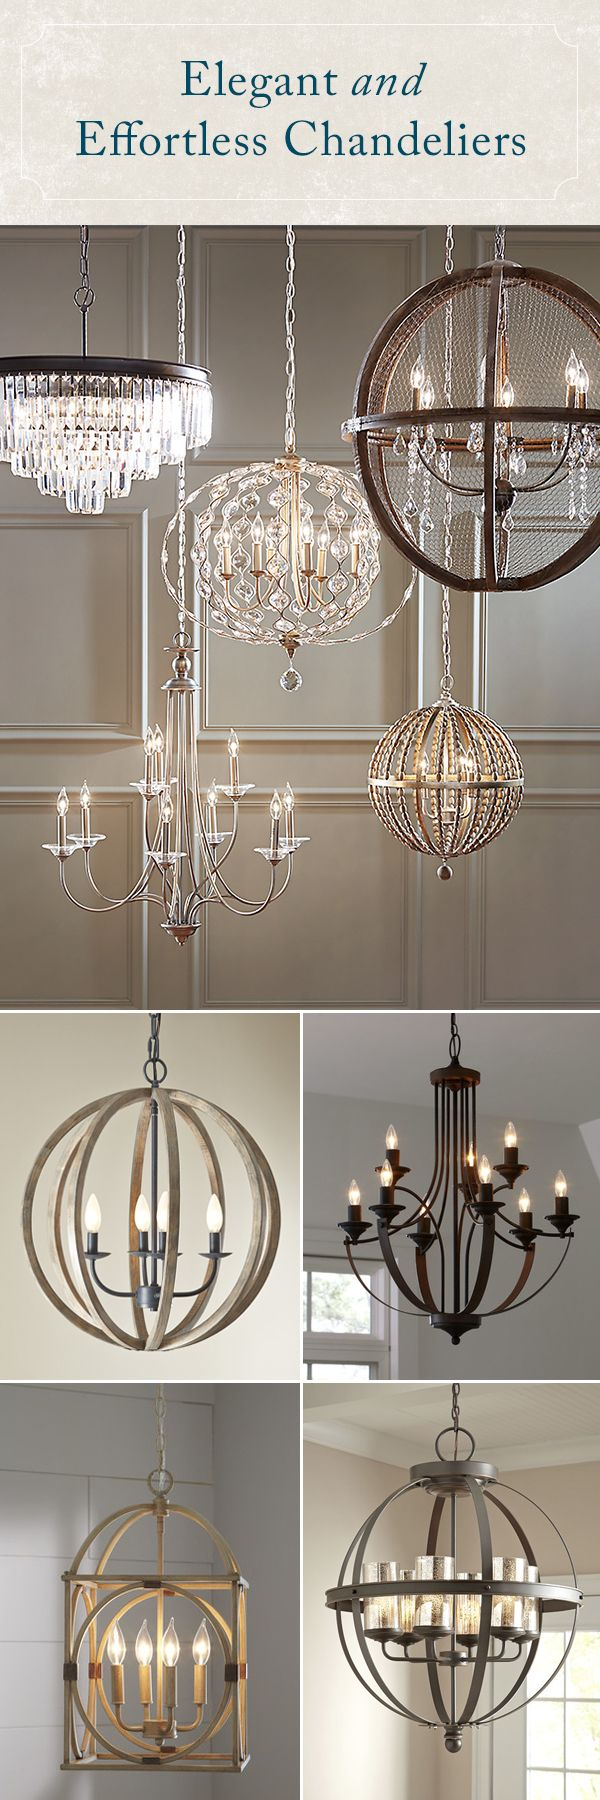 Shimmering, elegant, and bright, the right chandelier adds some much-needed drama to your space. Whether your style skews traditional or has a more rough-around-the-edges farmhouse feel, Birch Lane's selection of chandeliers has an option for you. Best of all, every order over $49 Ships Free!